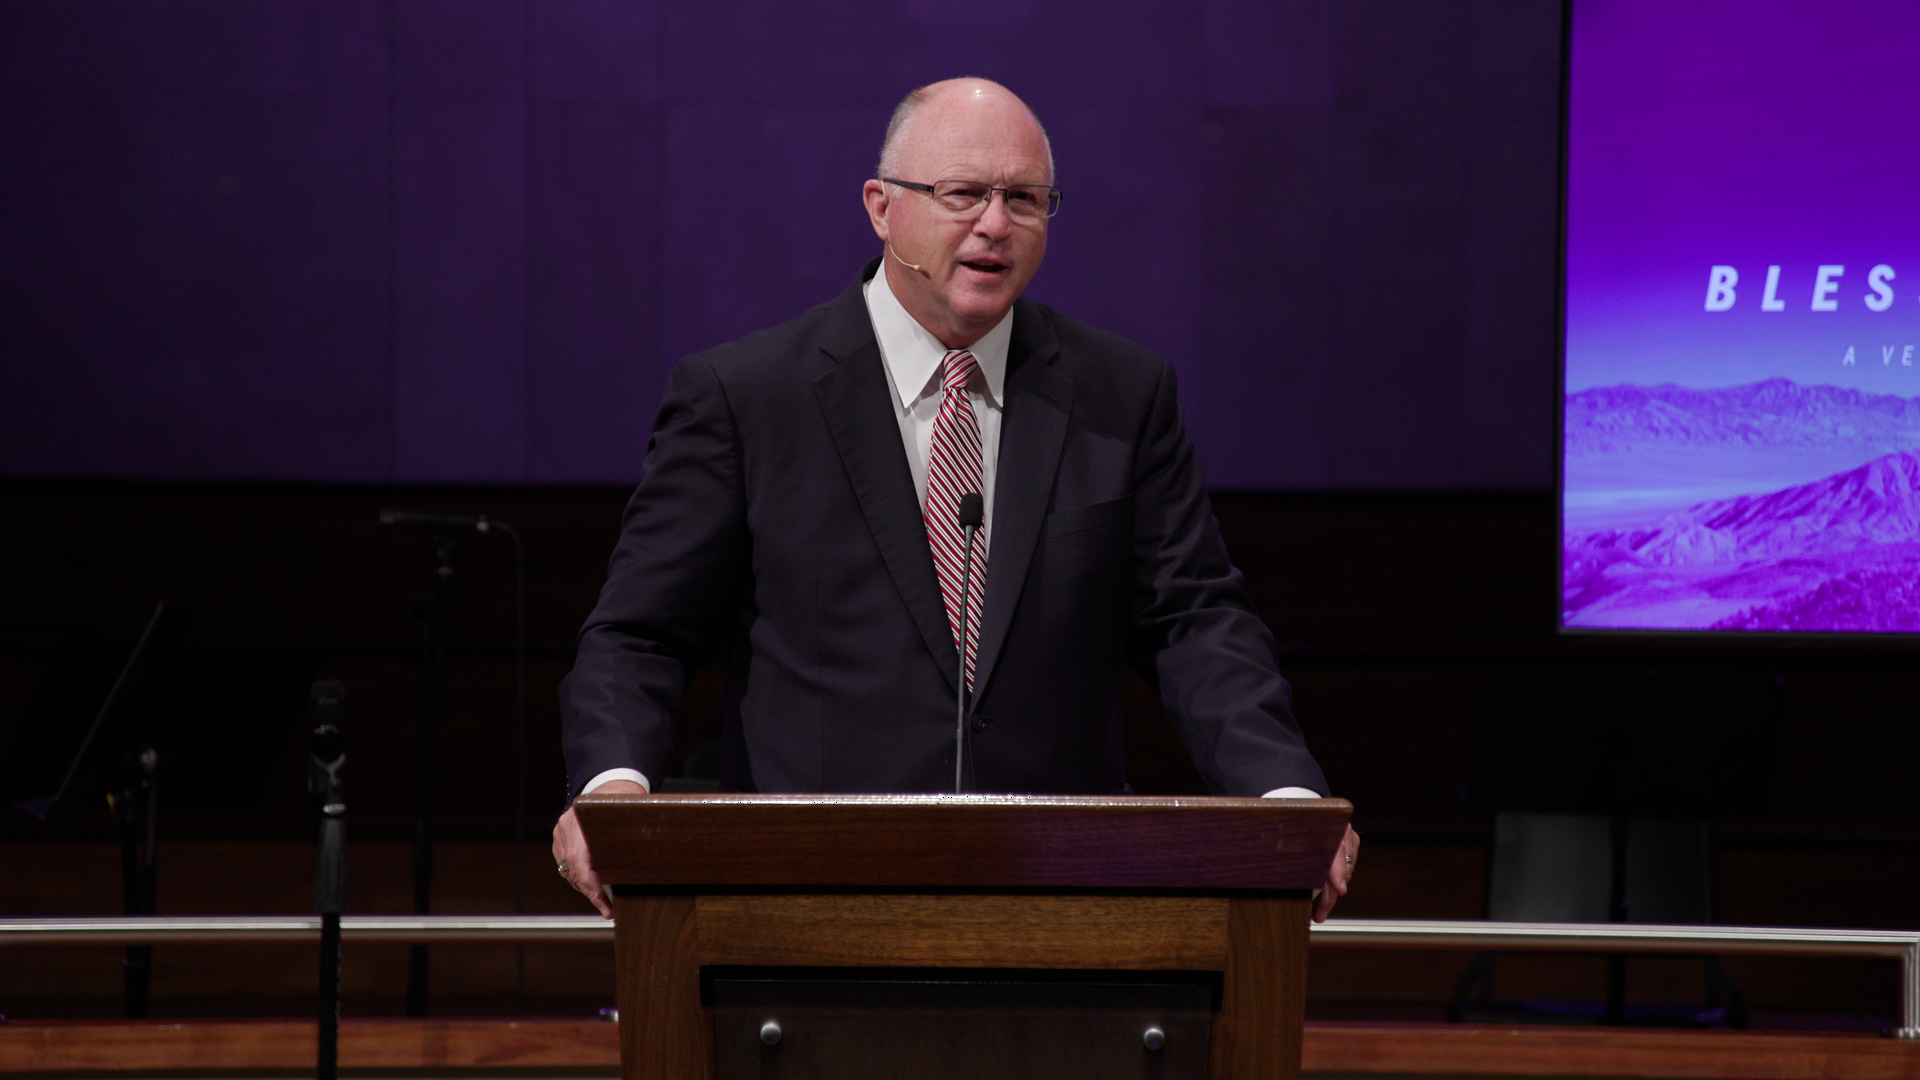 Pastor Paul Chappell: Fellowshipping in the Light